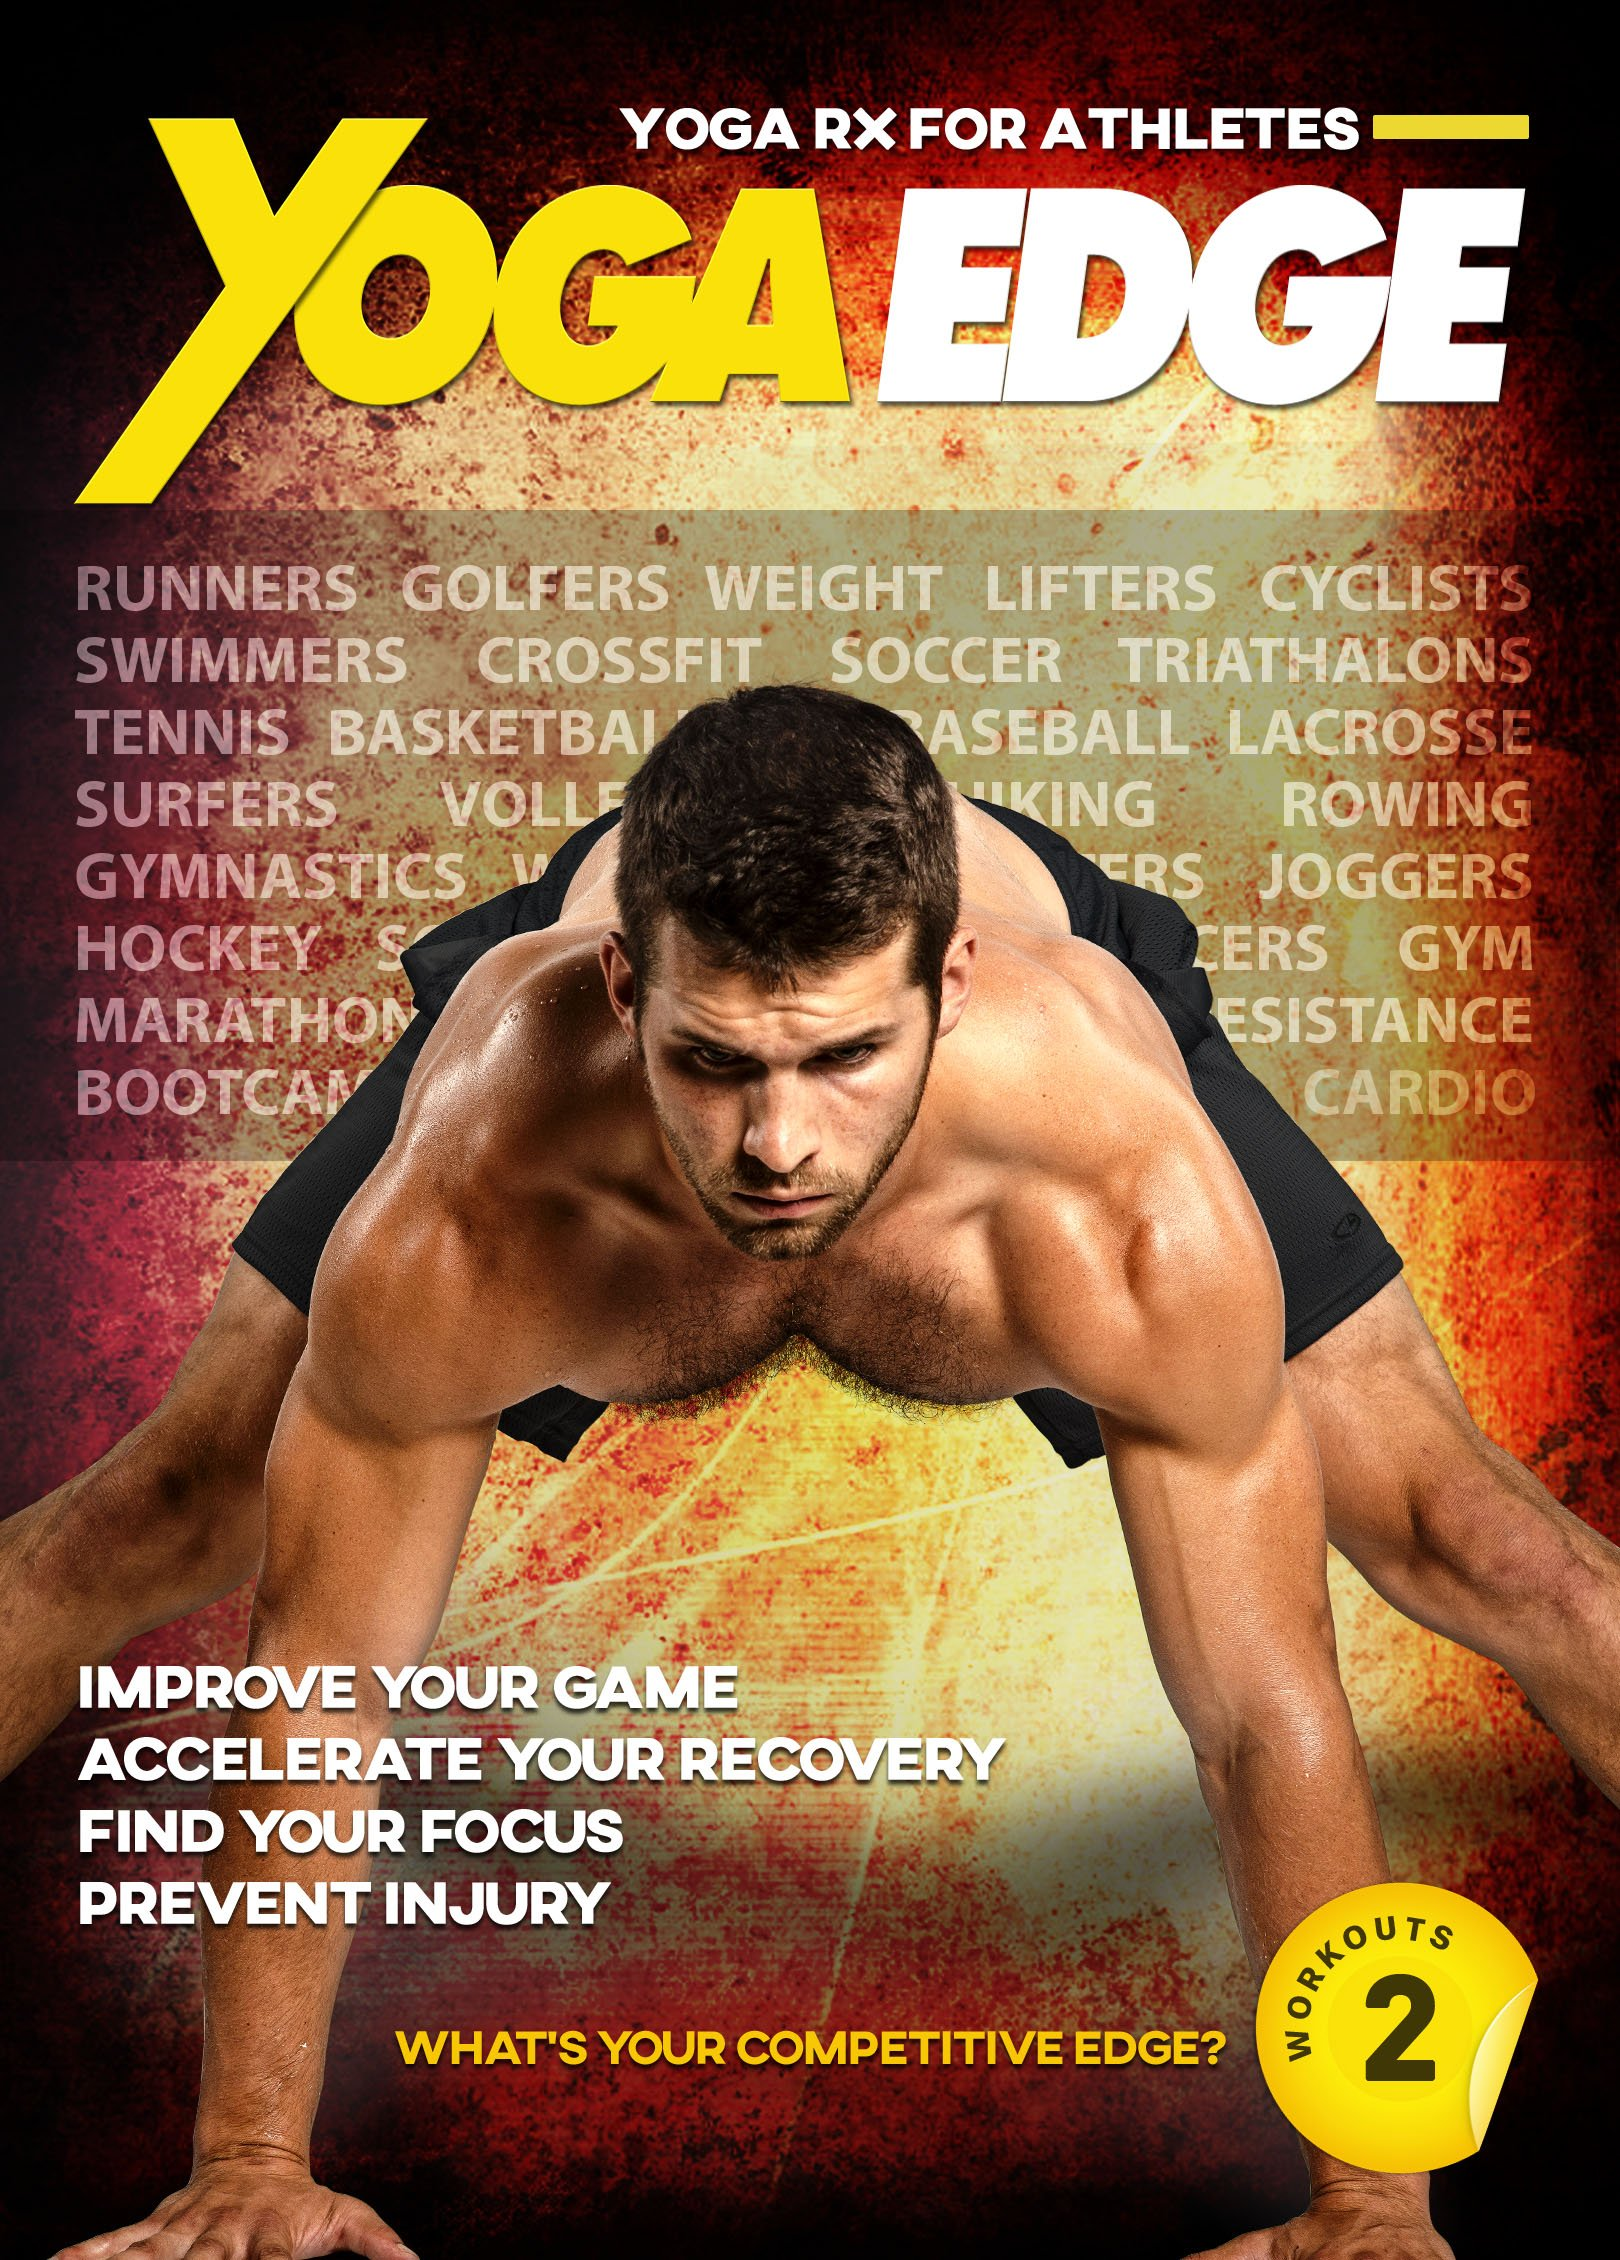 Yoga Edge - Yoga Rx For Runners, Cyclists, Athletes, Golfers, Weight Training, Hiking, Tennis, Swimmers, Cross Fitness, and More! Train Harder, Recover Faster, Play Longer, and Feel Better! by Body By Yoga